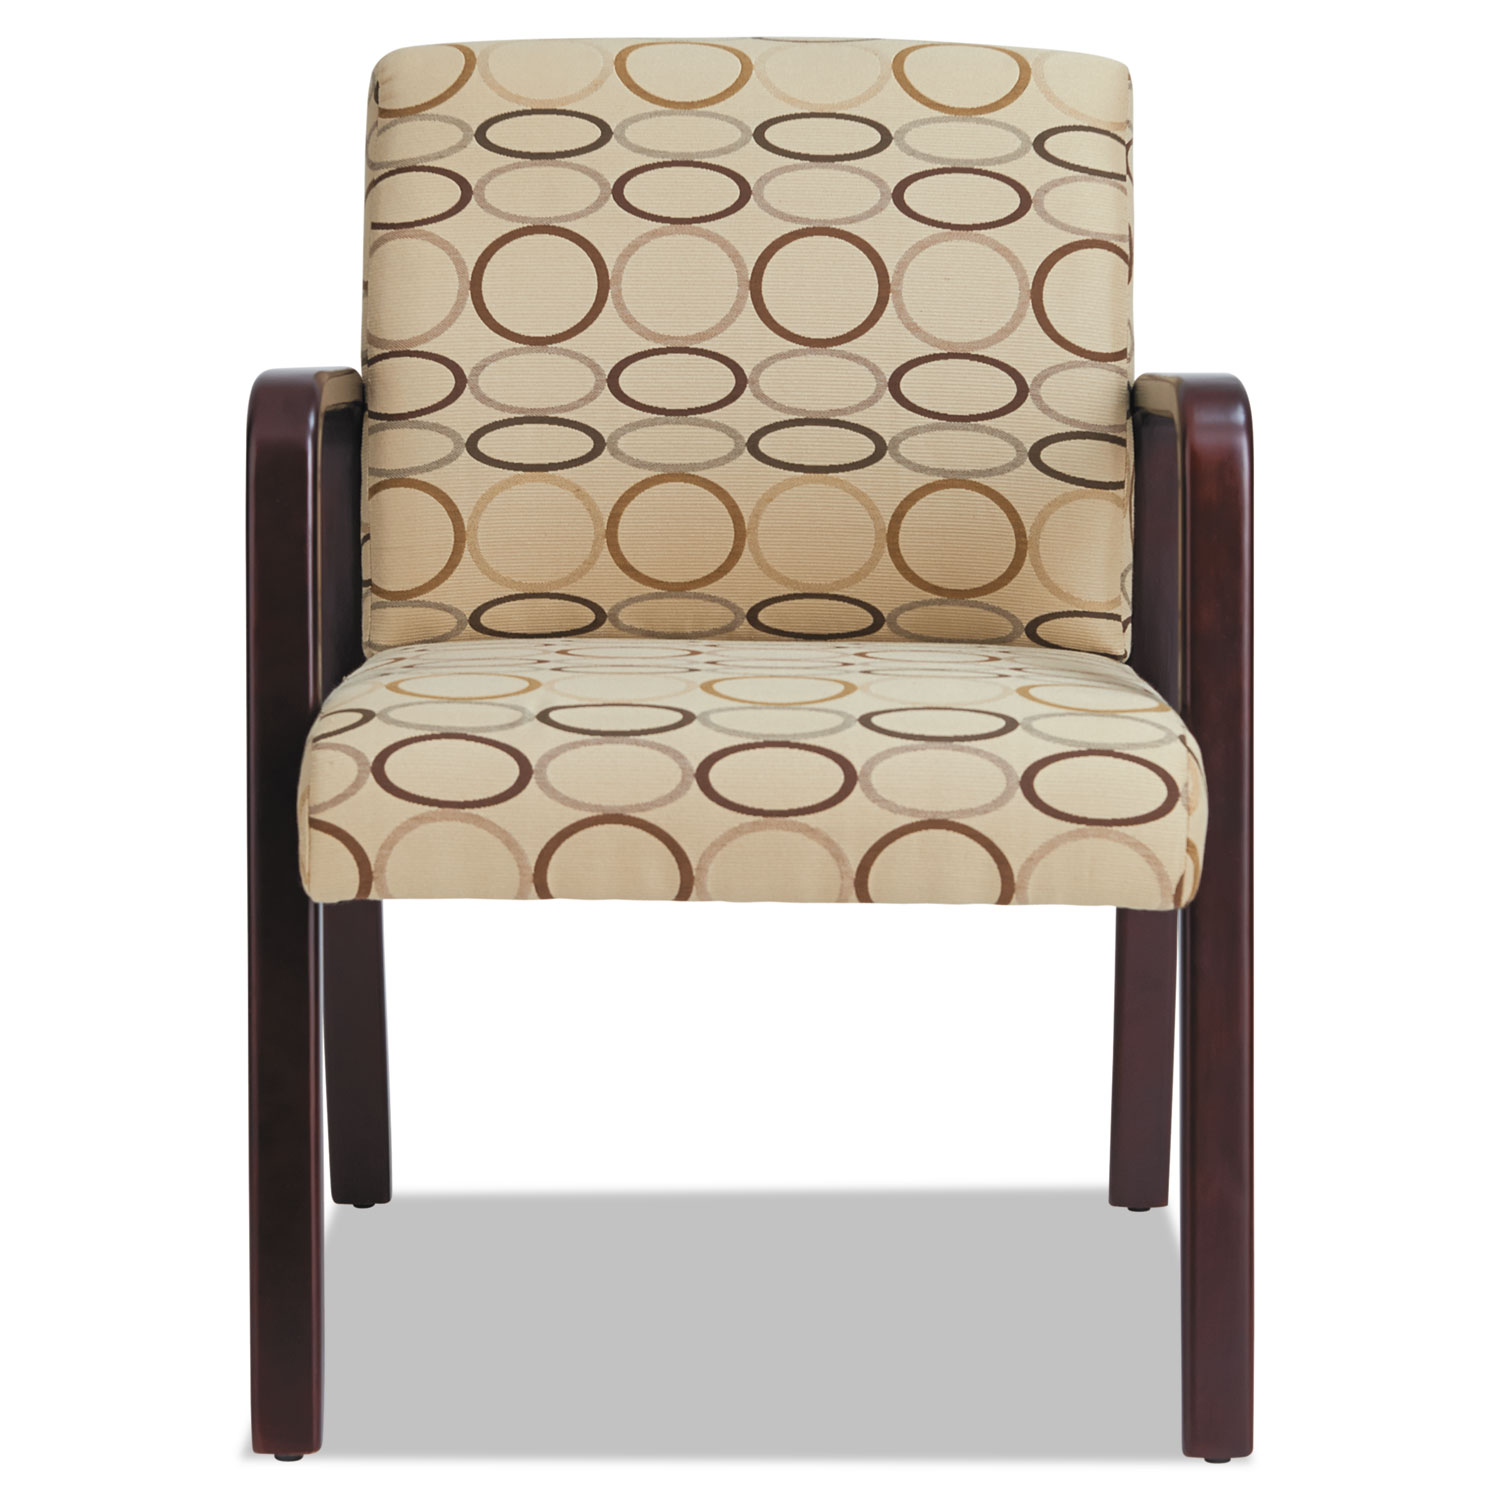 Alera Reception Lounge Series Guest Chair by Alera ALERL4351M